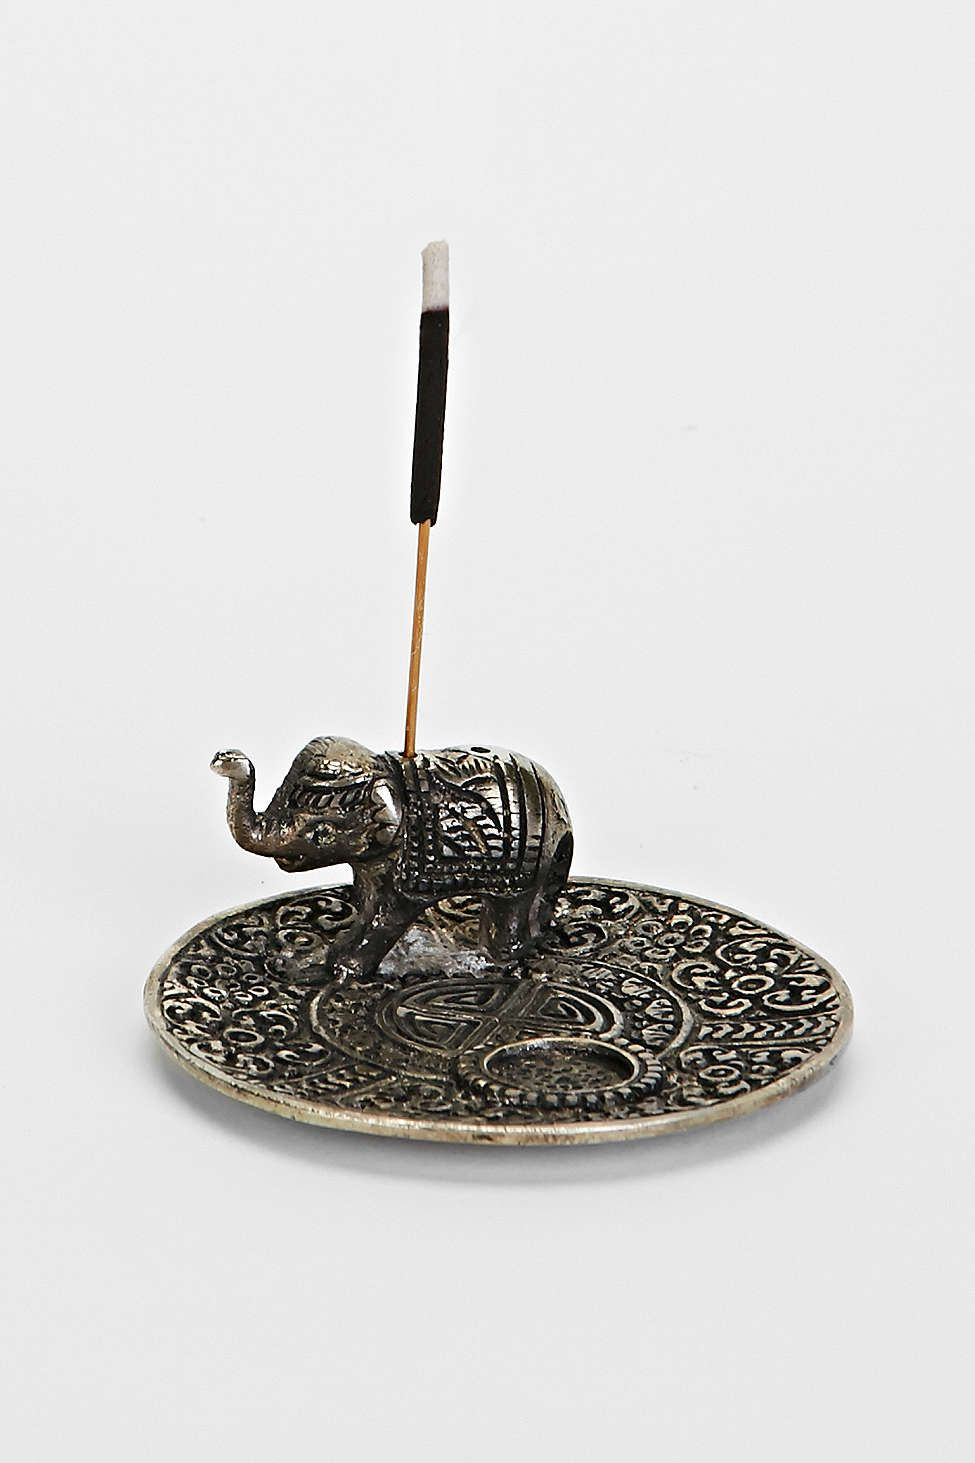 Metal Elephant Incense Holder - Urban Outfitters ($16)